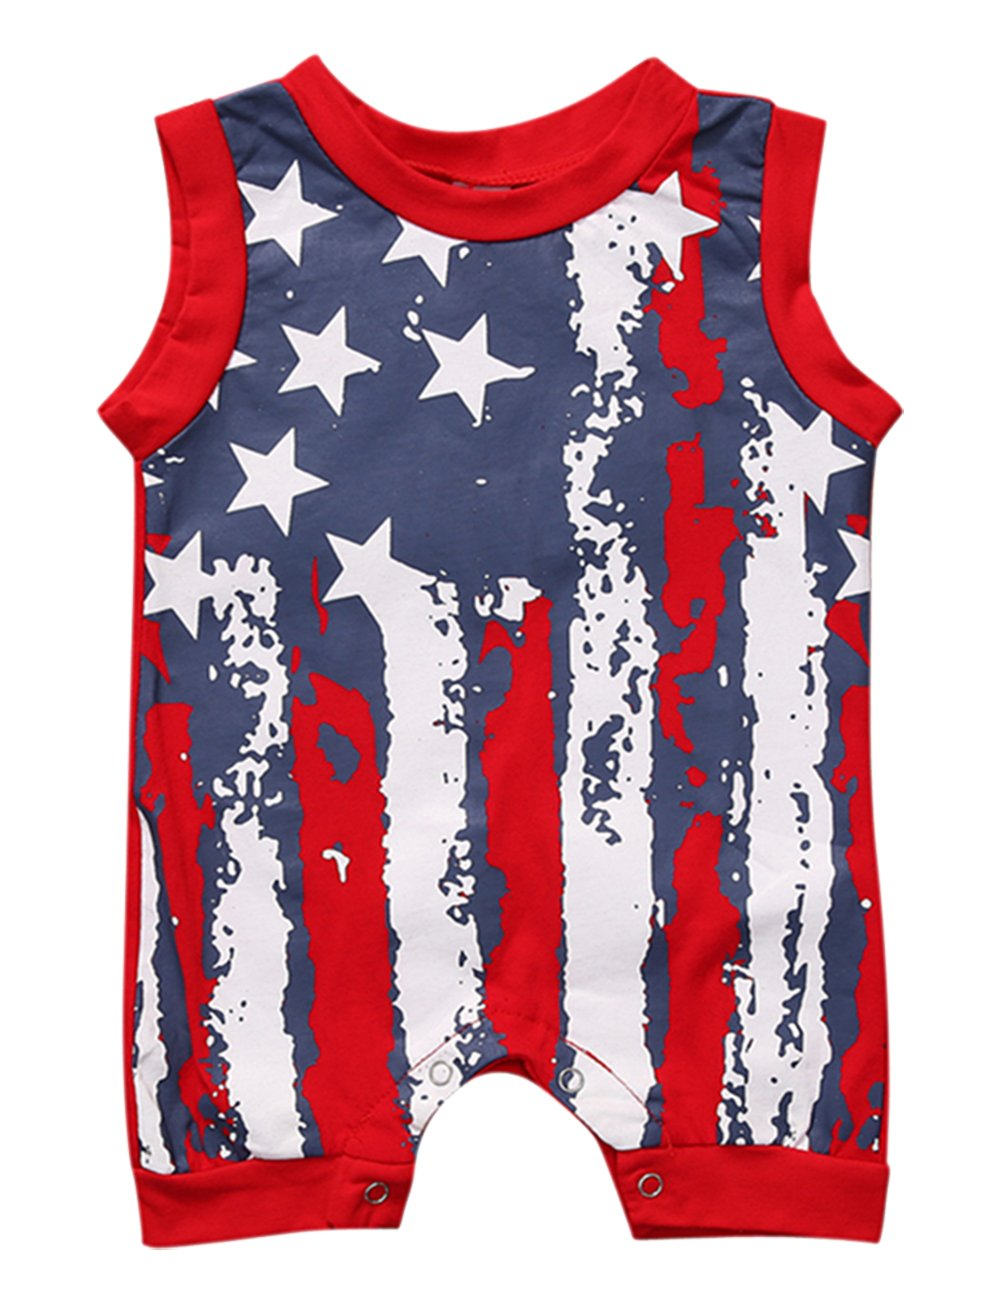 UNIQUEONE Infant Baby Boys Girls Outfits American Flag Pattern Romper Jumpsuit Clothes Size 12-18Months/Tag90(Red)